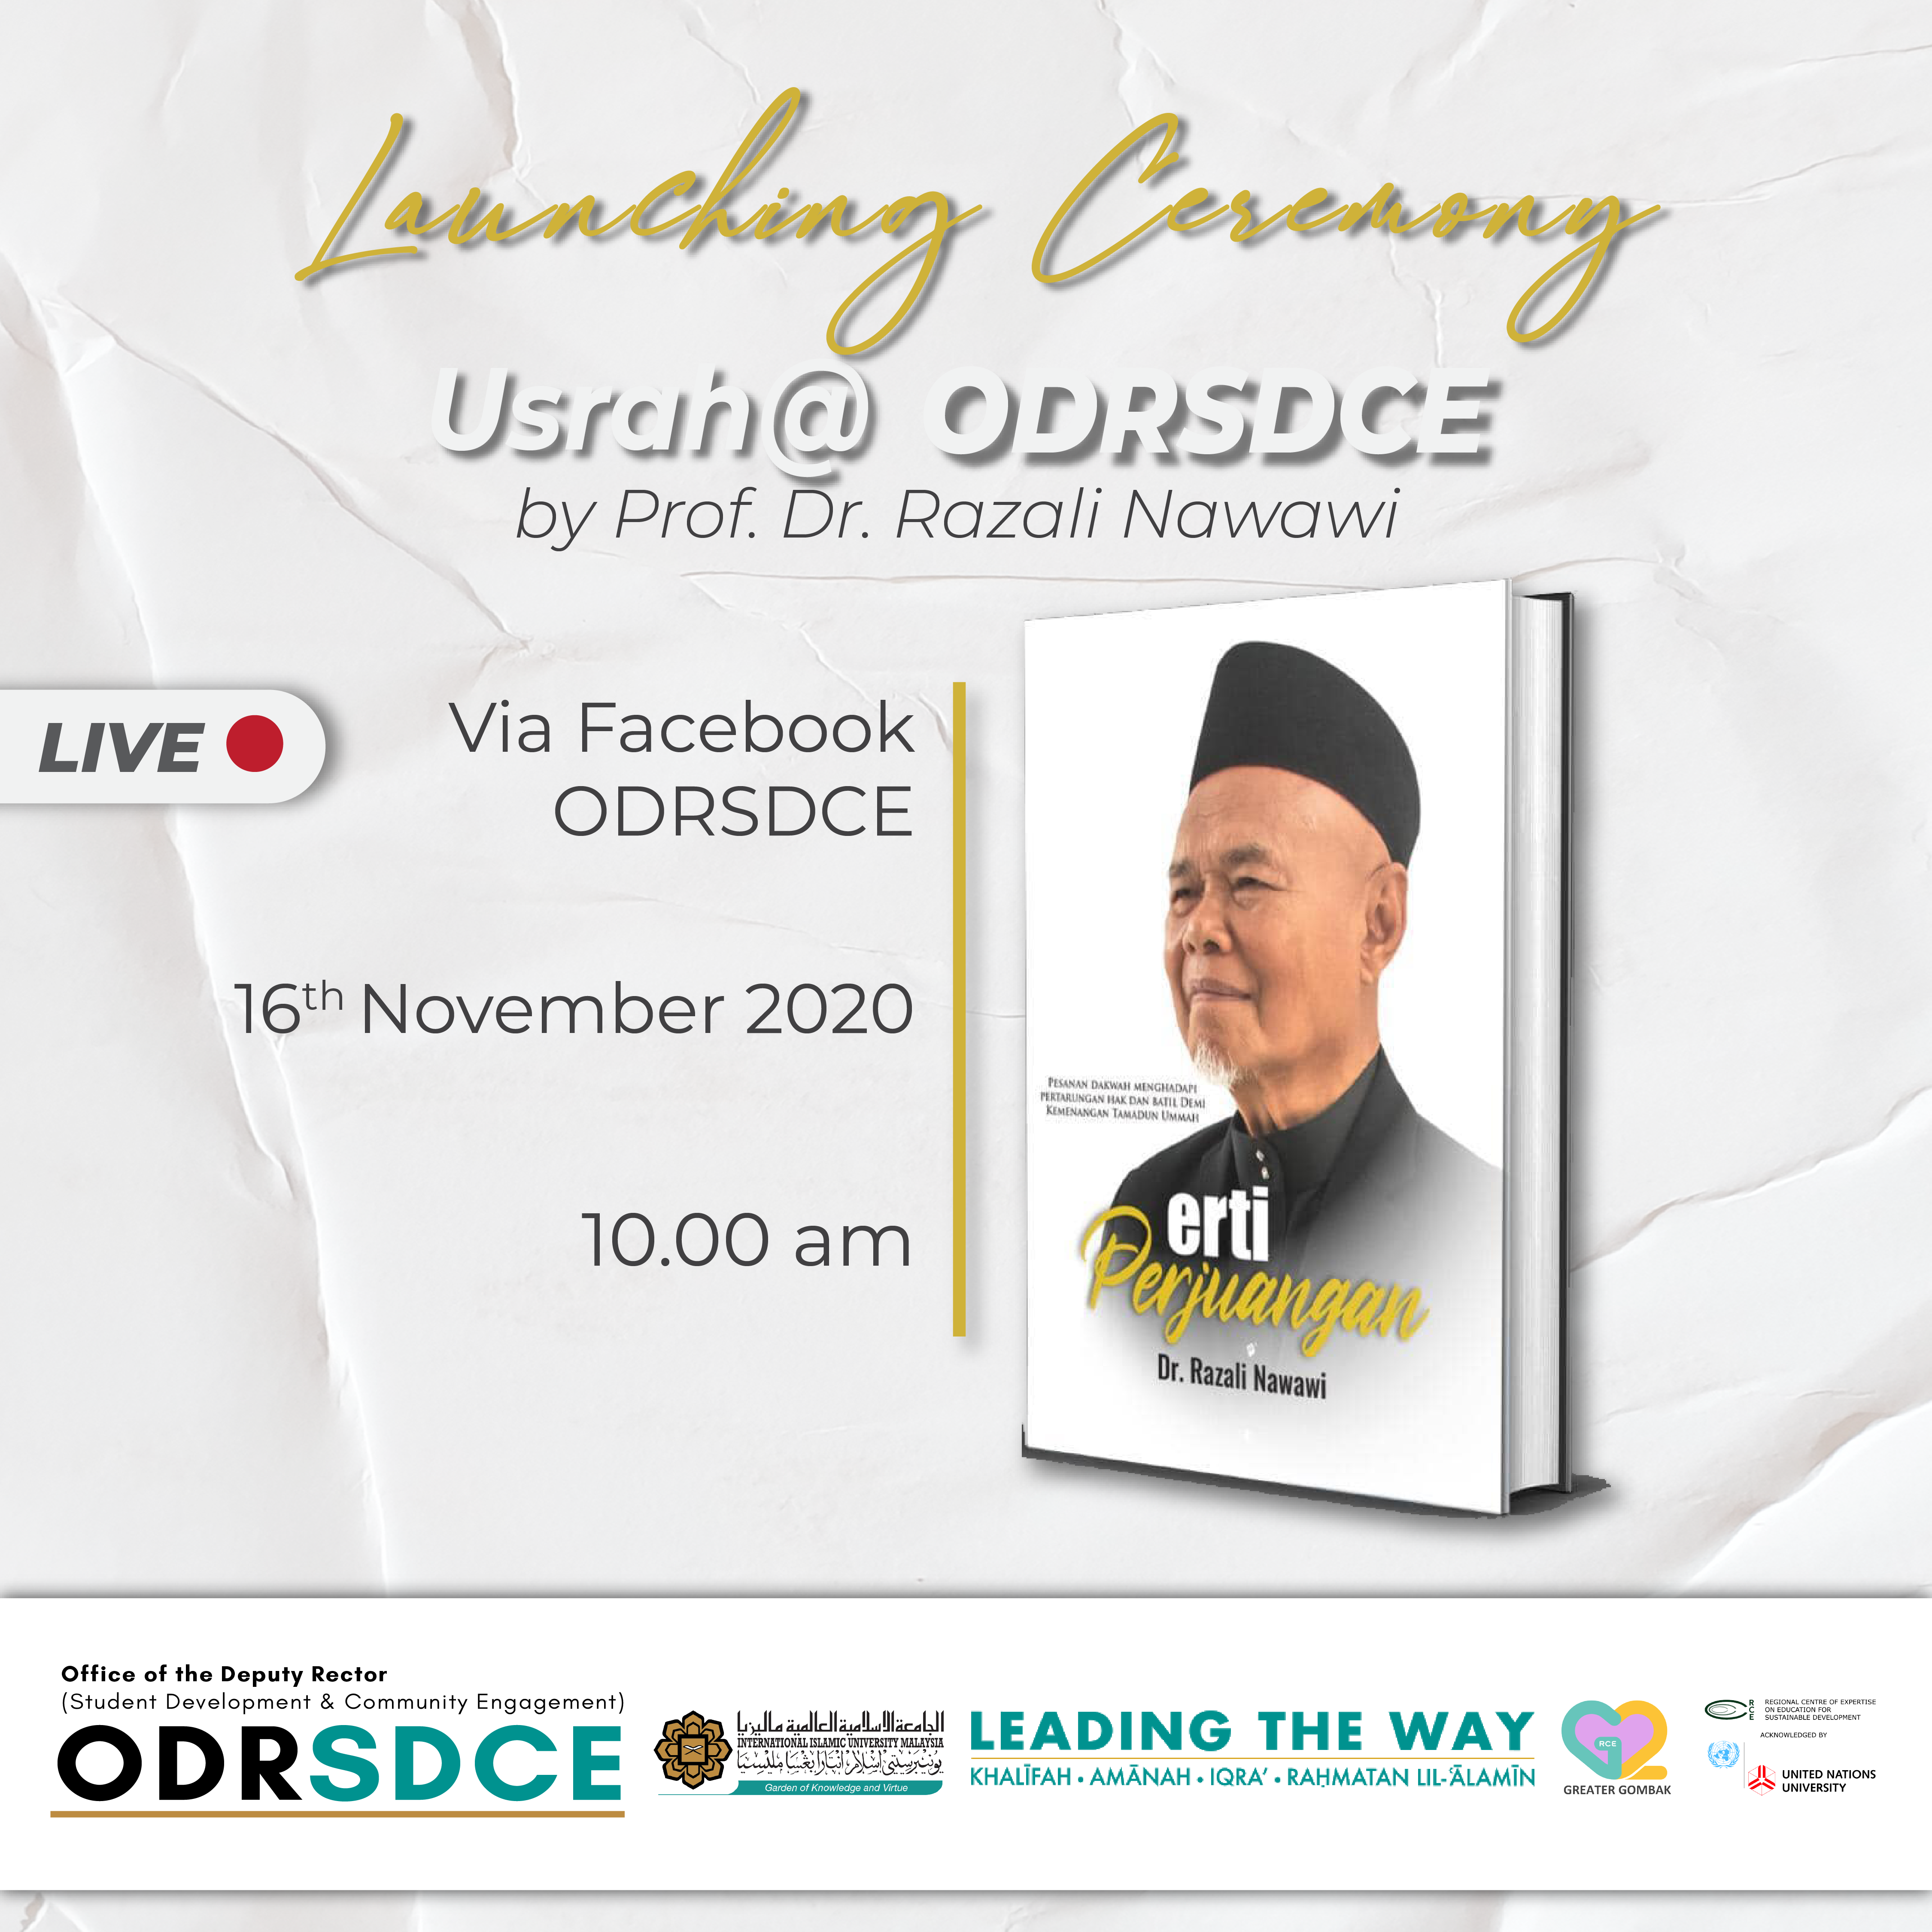 INVITATION TO PARTICIPATE LAUNCHING CEREMONY OF USRAH @ ODRSDCE